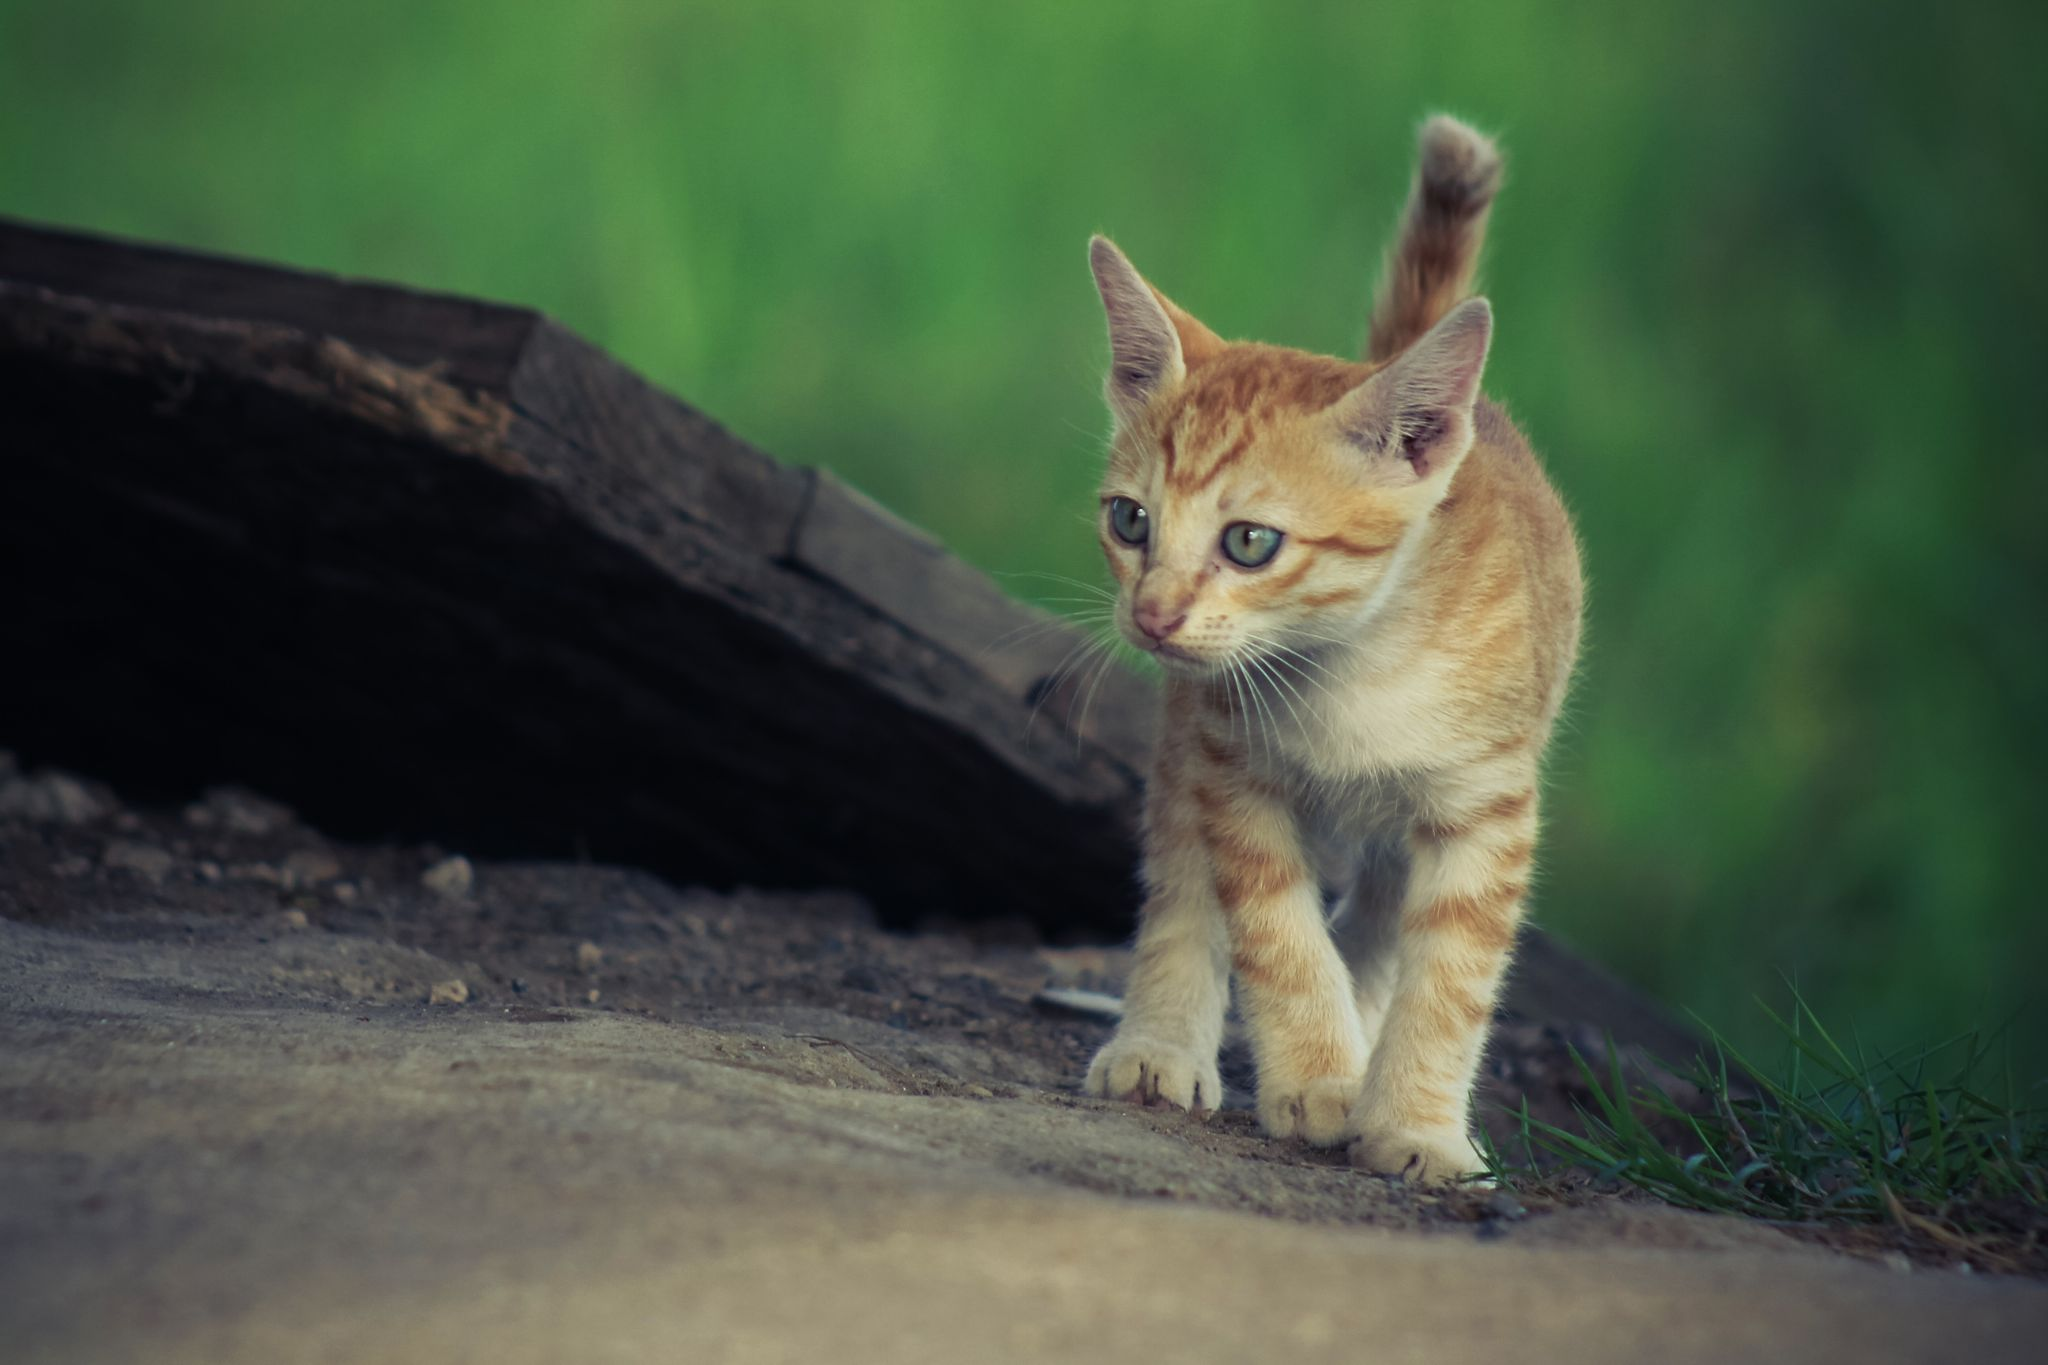 Cat by Nhat giang